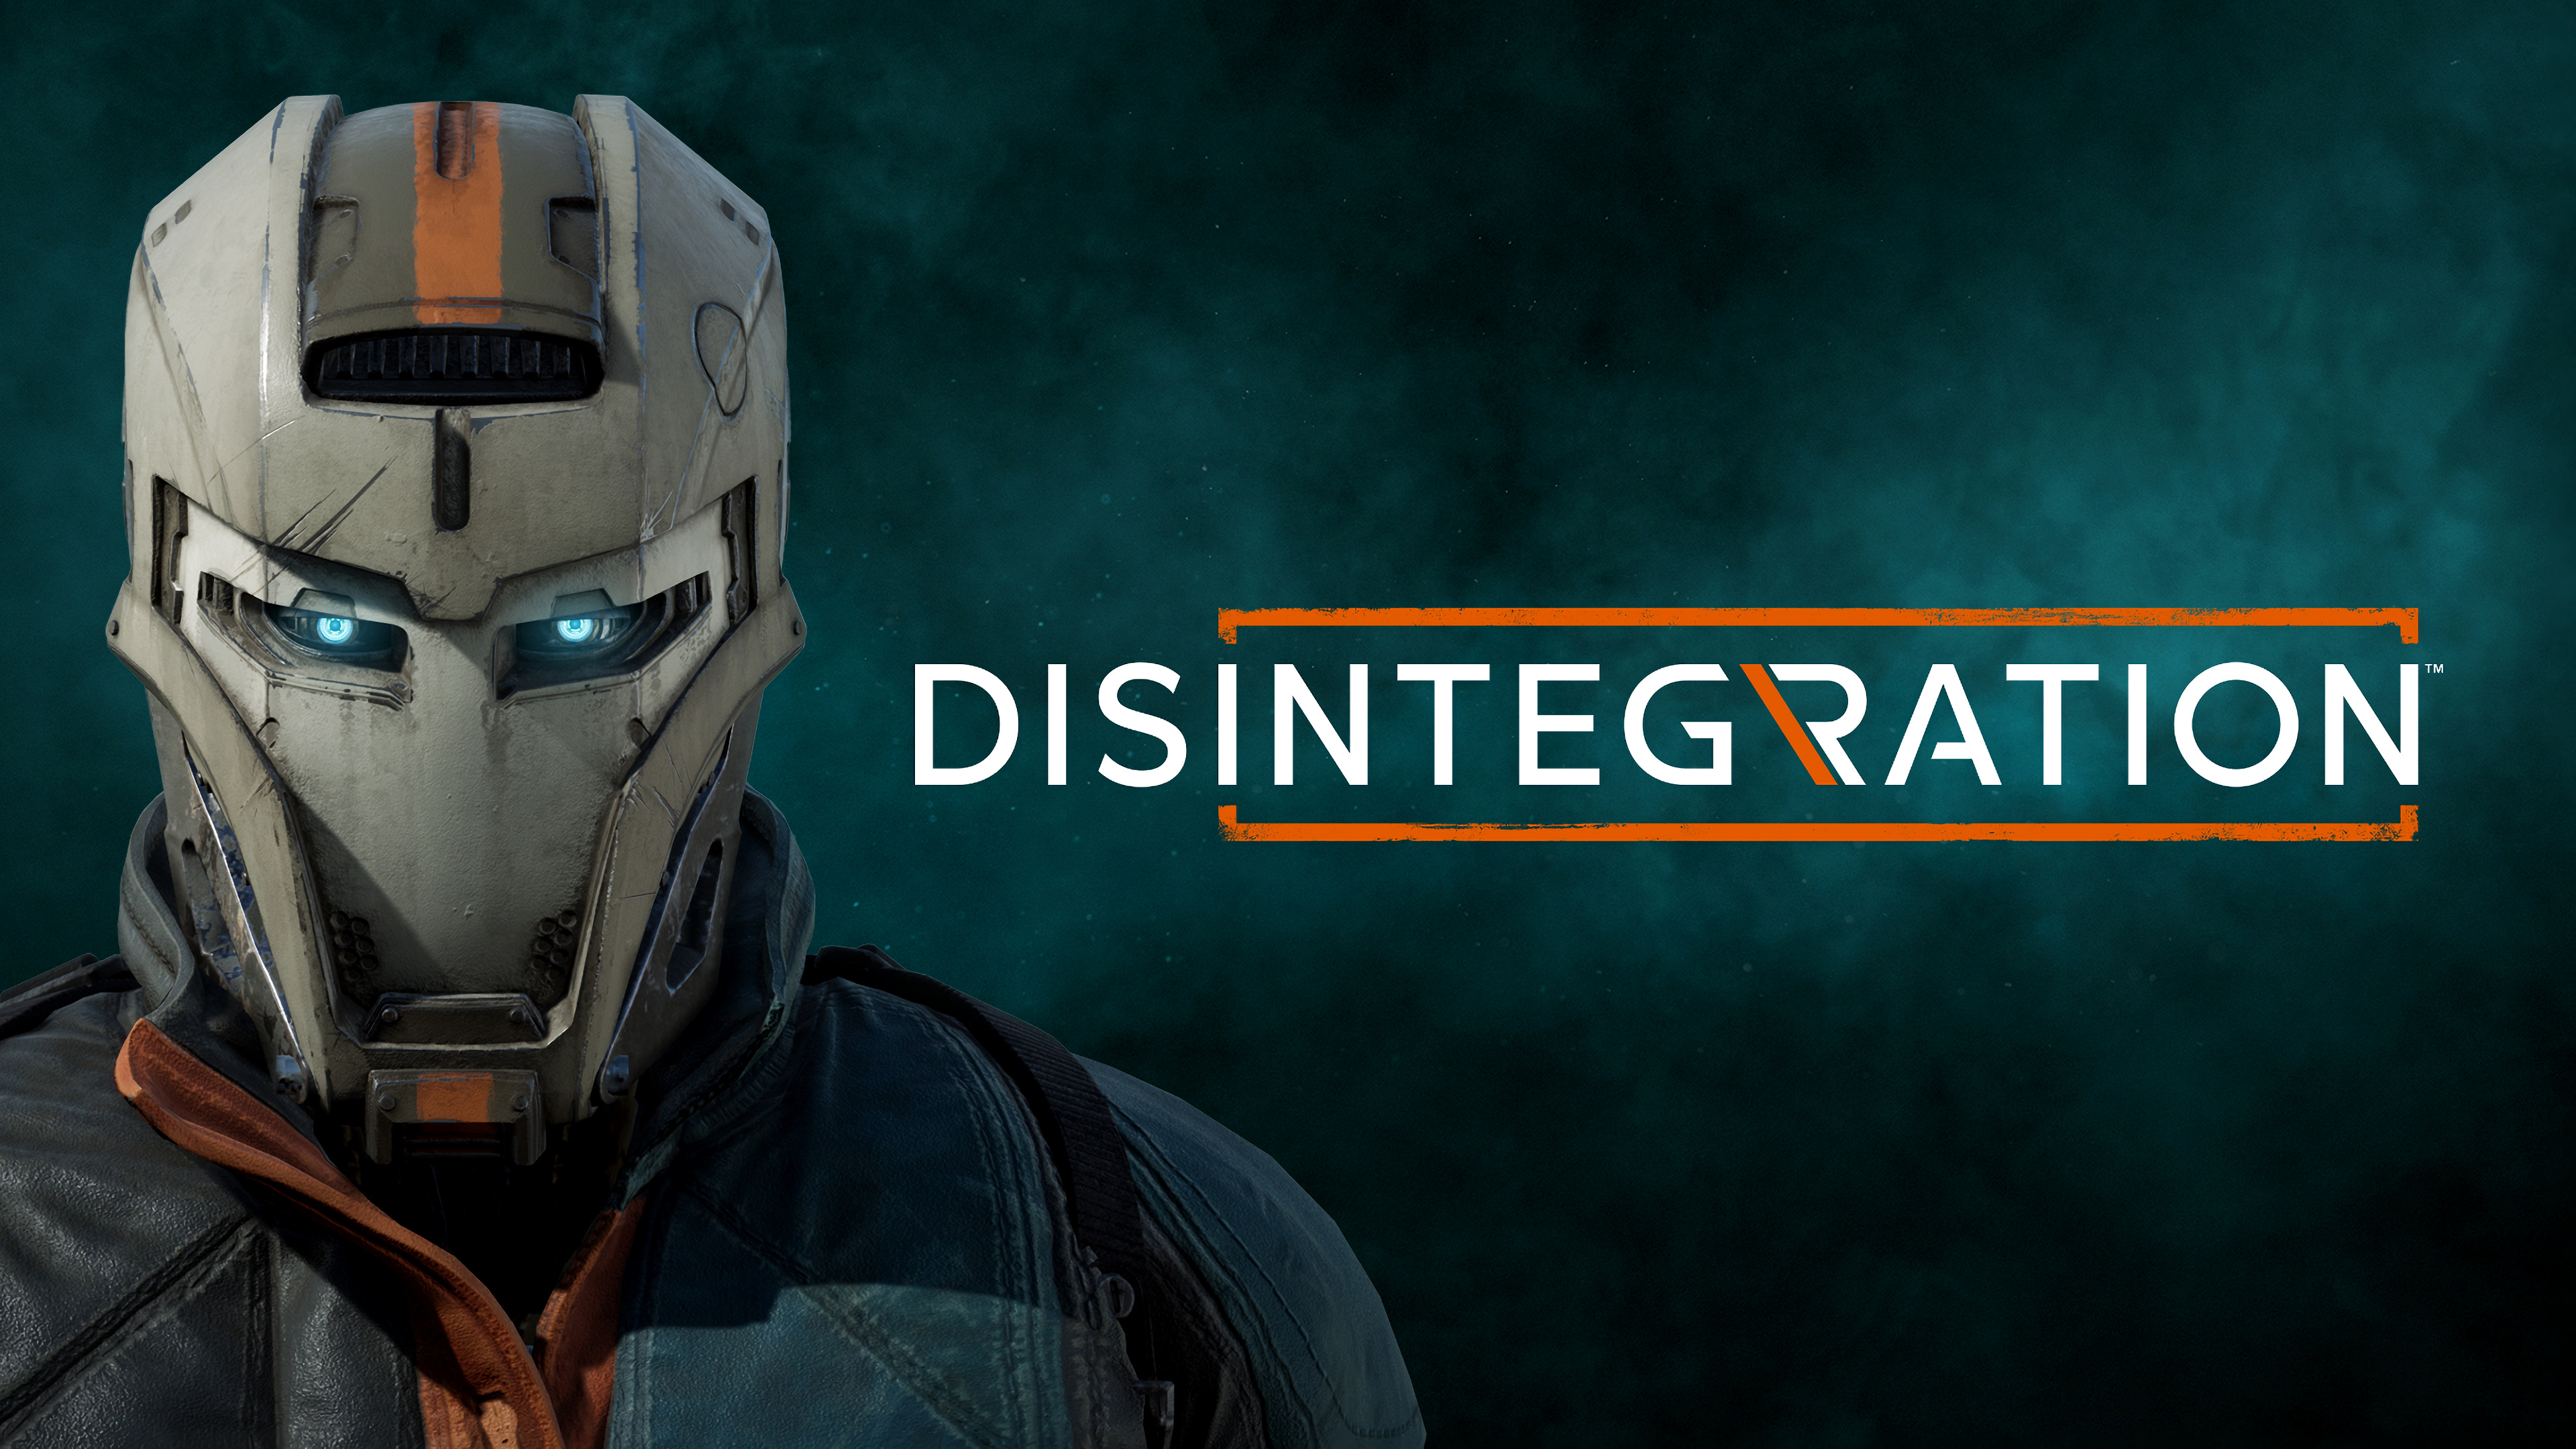 disintegration 2020 1570393193 - Disintegration 2020 - hd-wallpapers, games wallpapers, disintegration wallpapers, 4k-wallpapers, 2020 games wallpapers